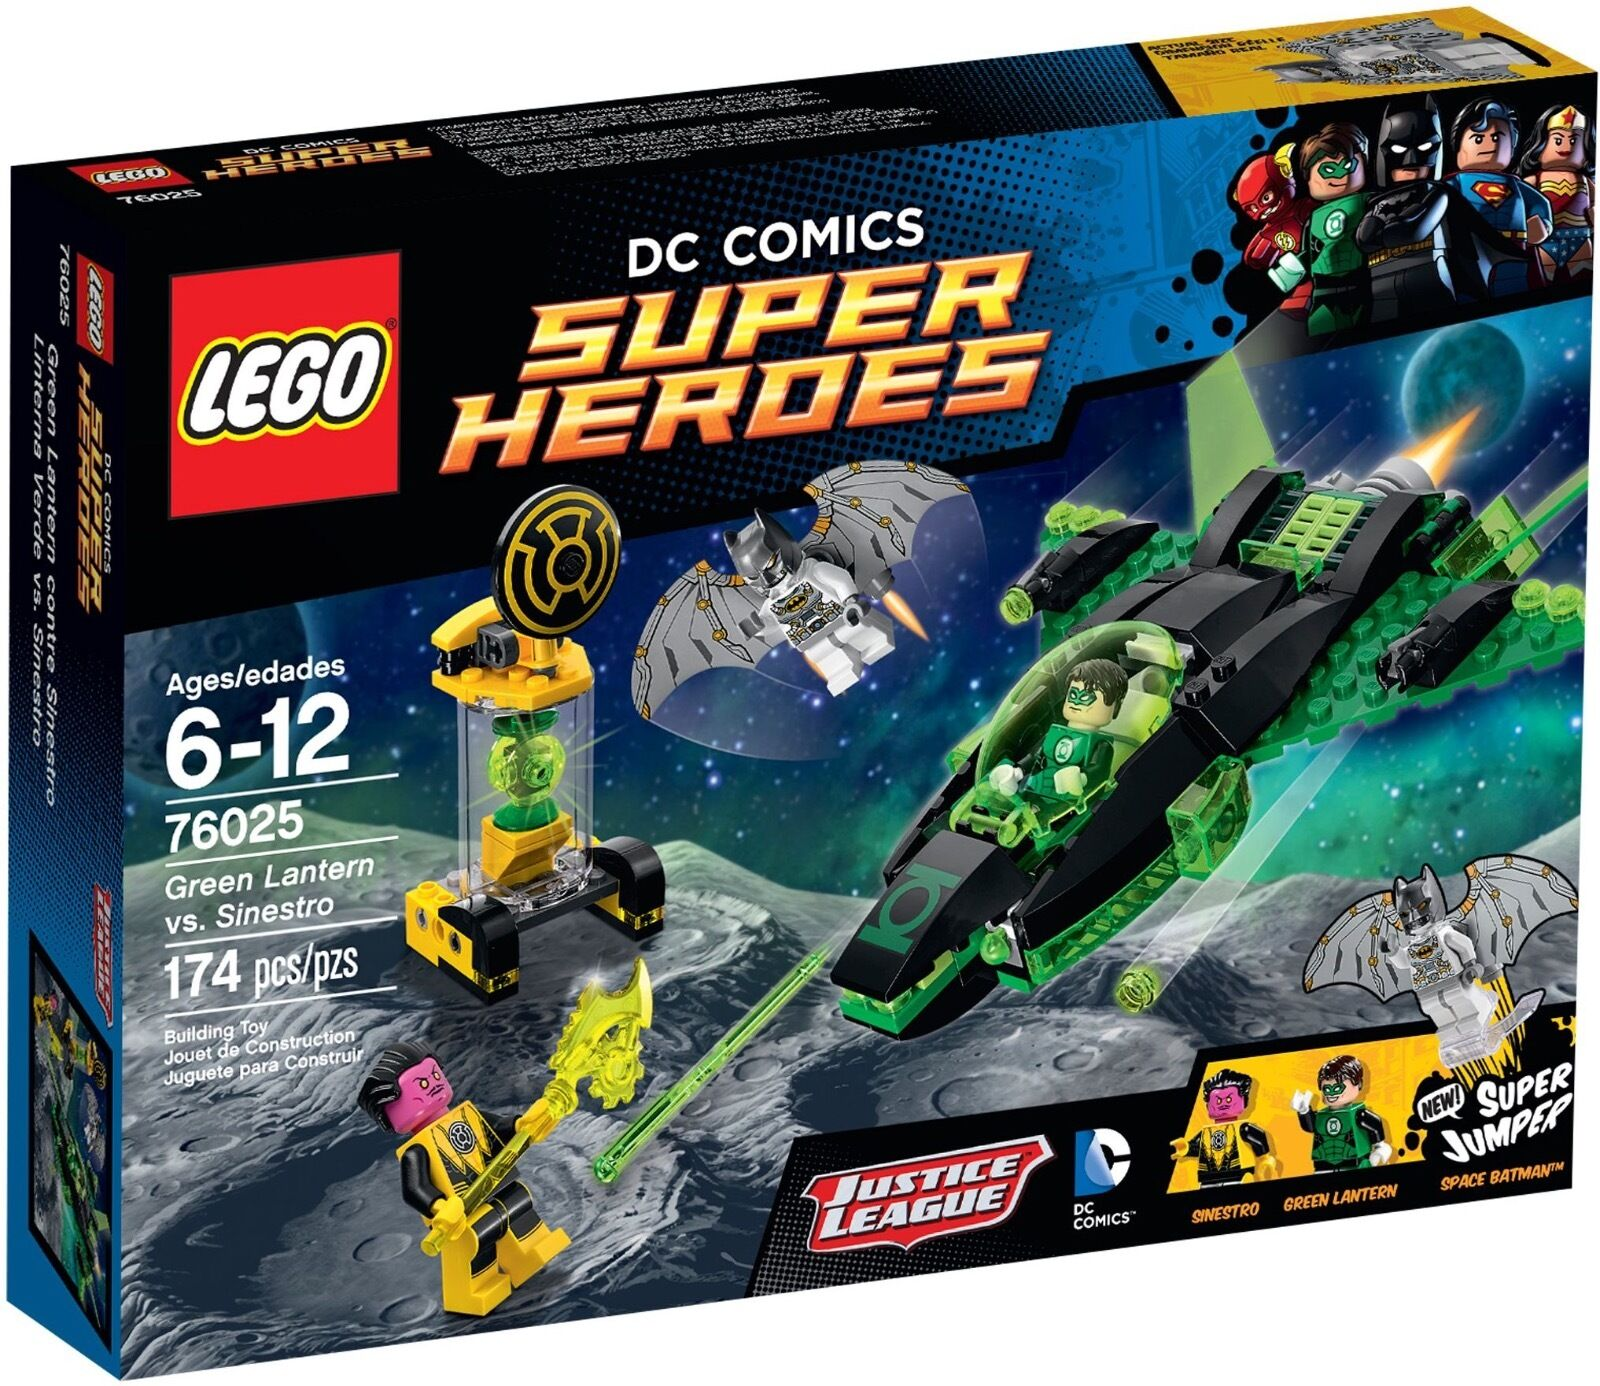 LEGO DC Comics Super Heroes 76025 - Green Lantern Vs Sinestro RETIRED SET- NEW